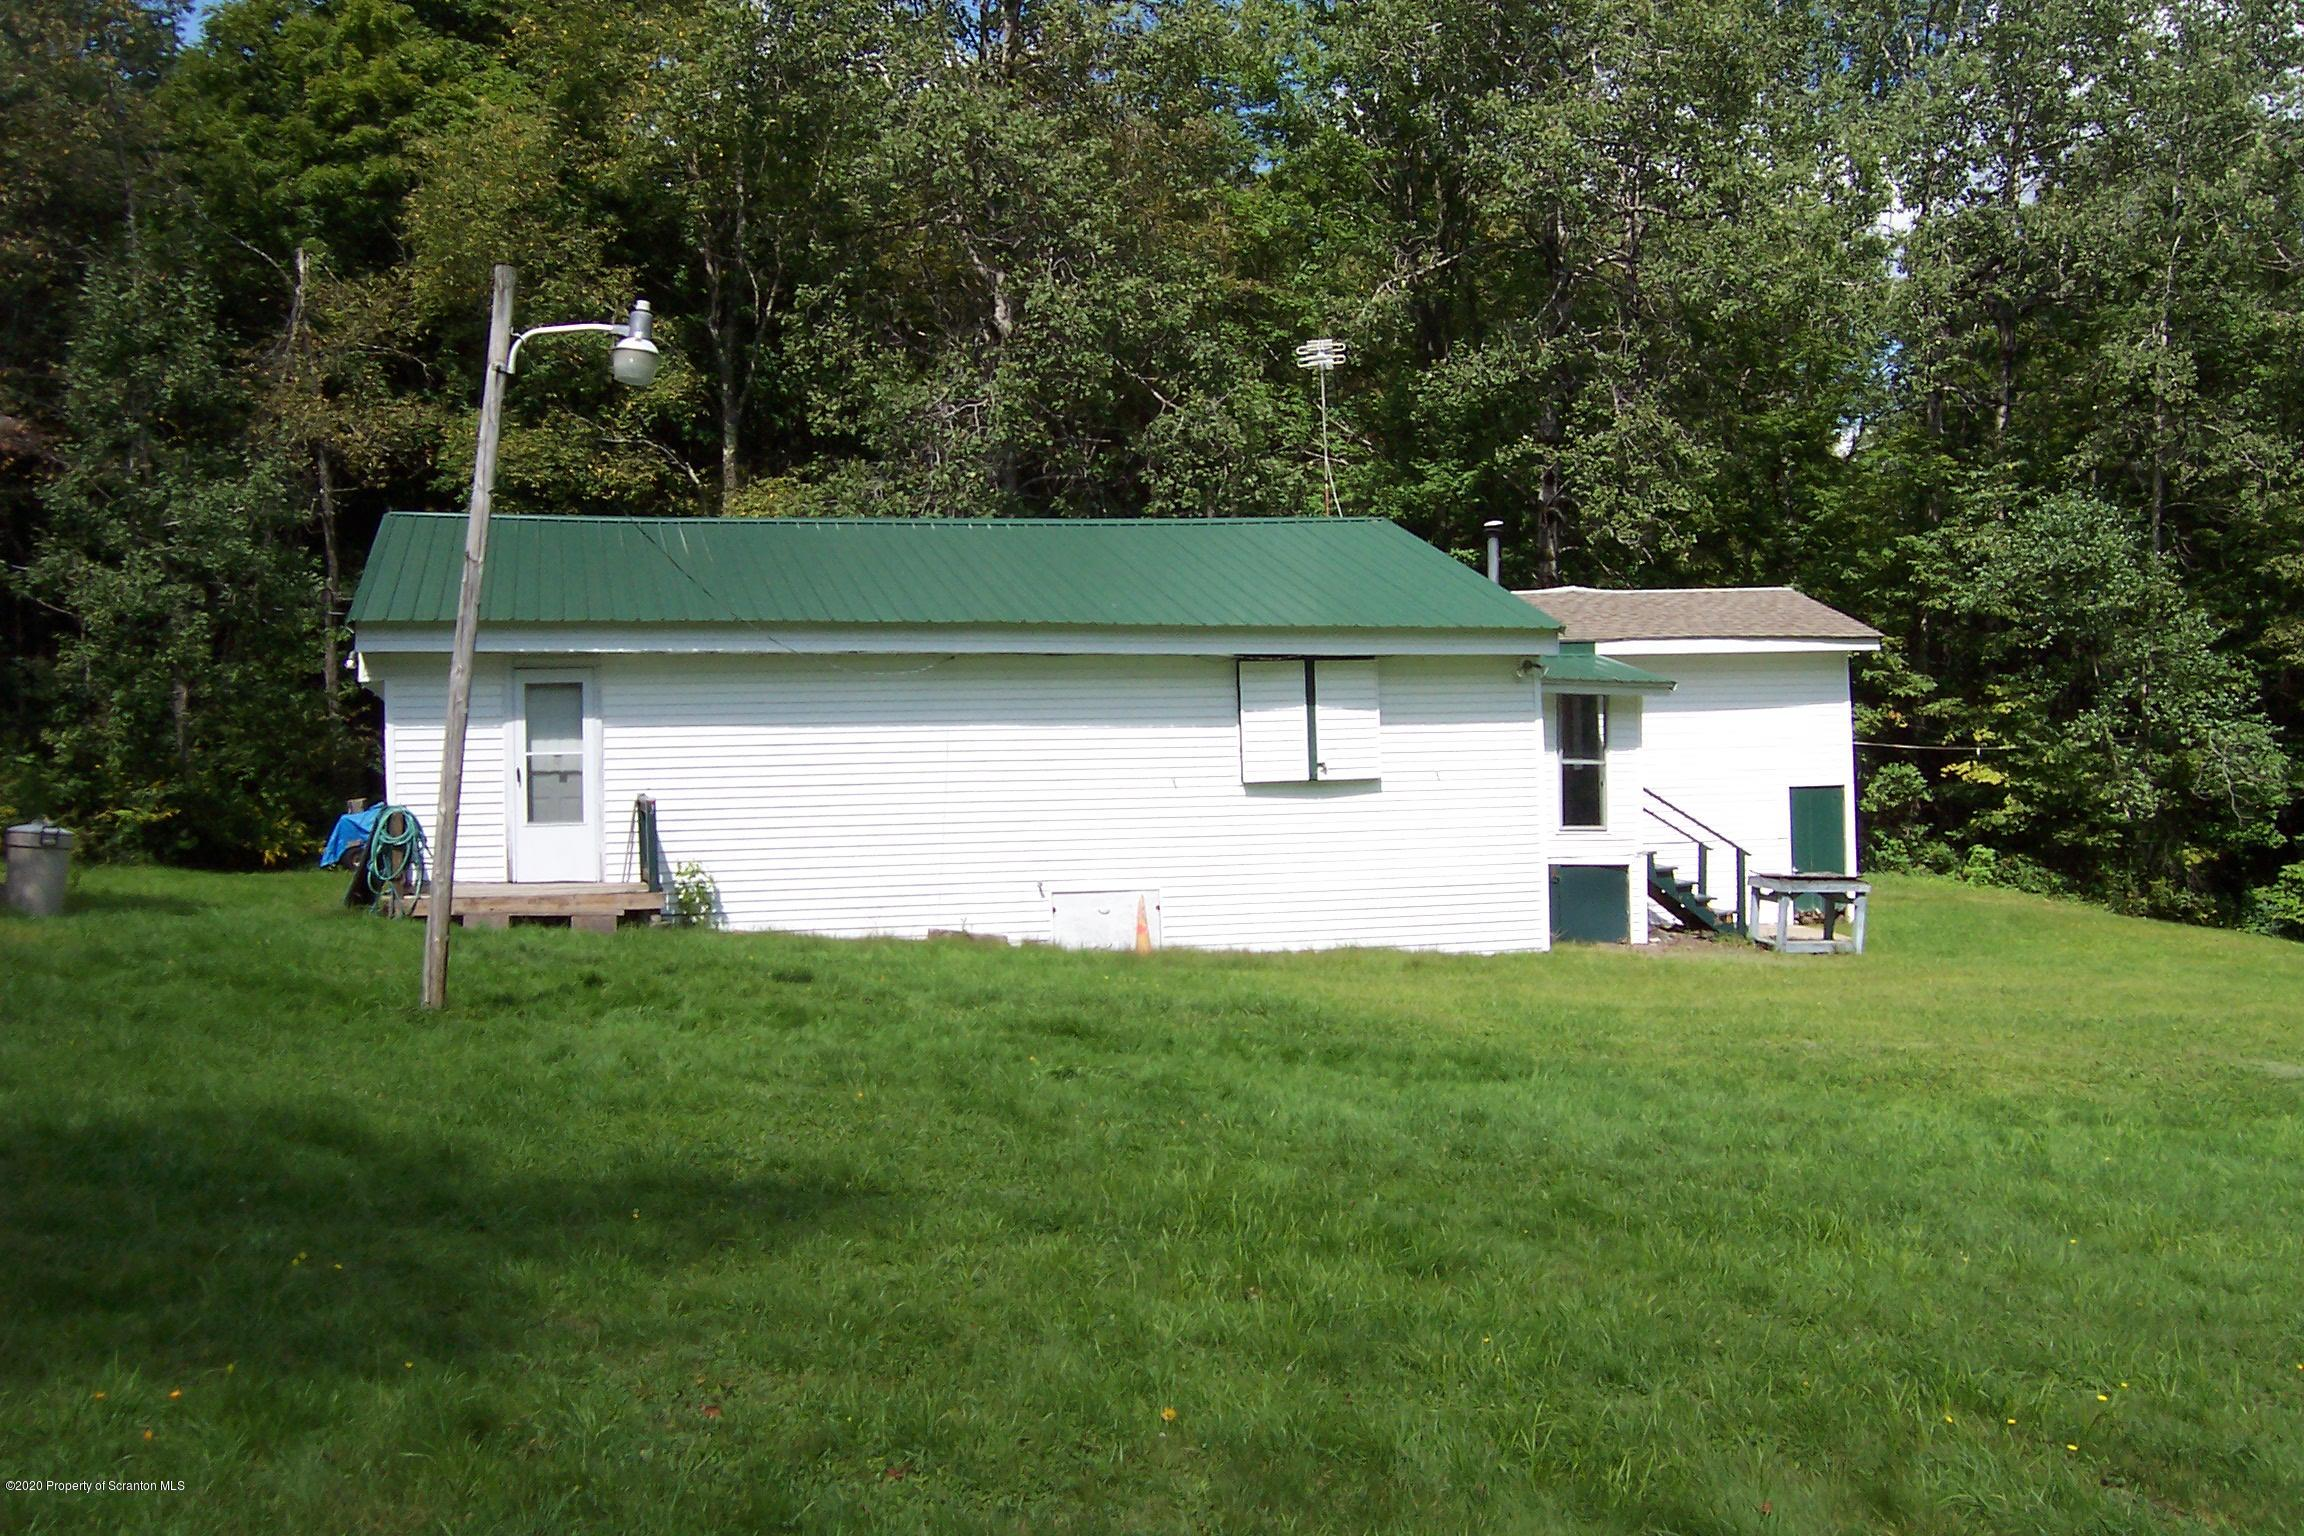 1969 Creek Rd, Union Dale, Pennsylvania 18470, 3 Bedrooms Bedrooms, 5 Rooms Rooms,1 BathroomBathrooms,Single Family,For Sale,Creek Rd,20-3645